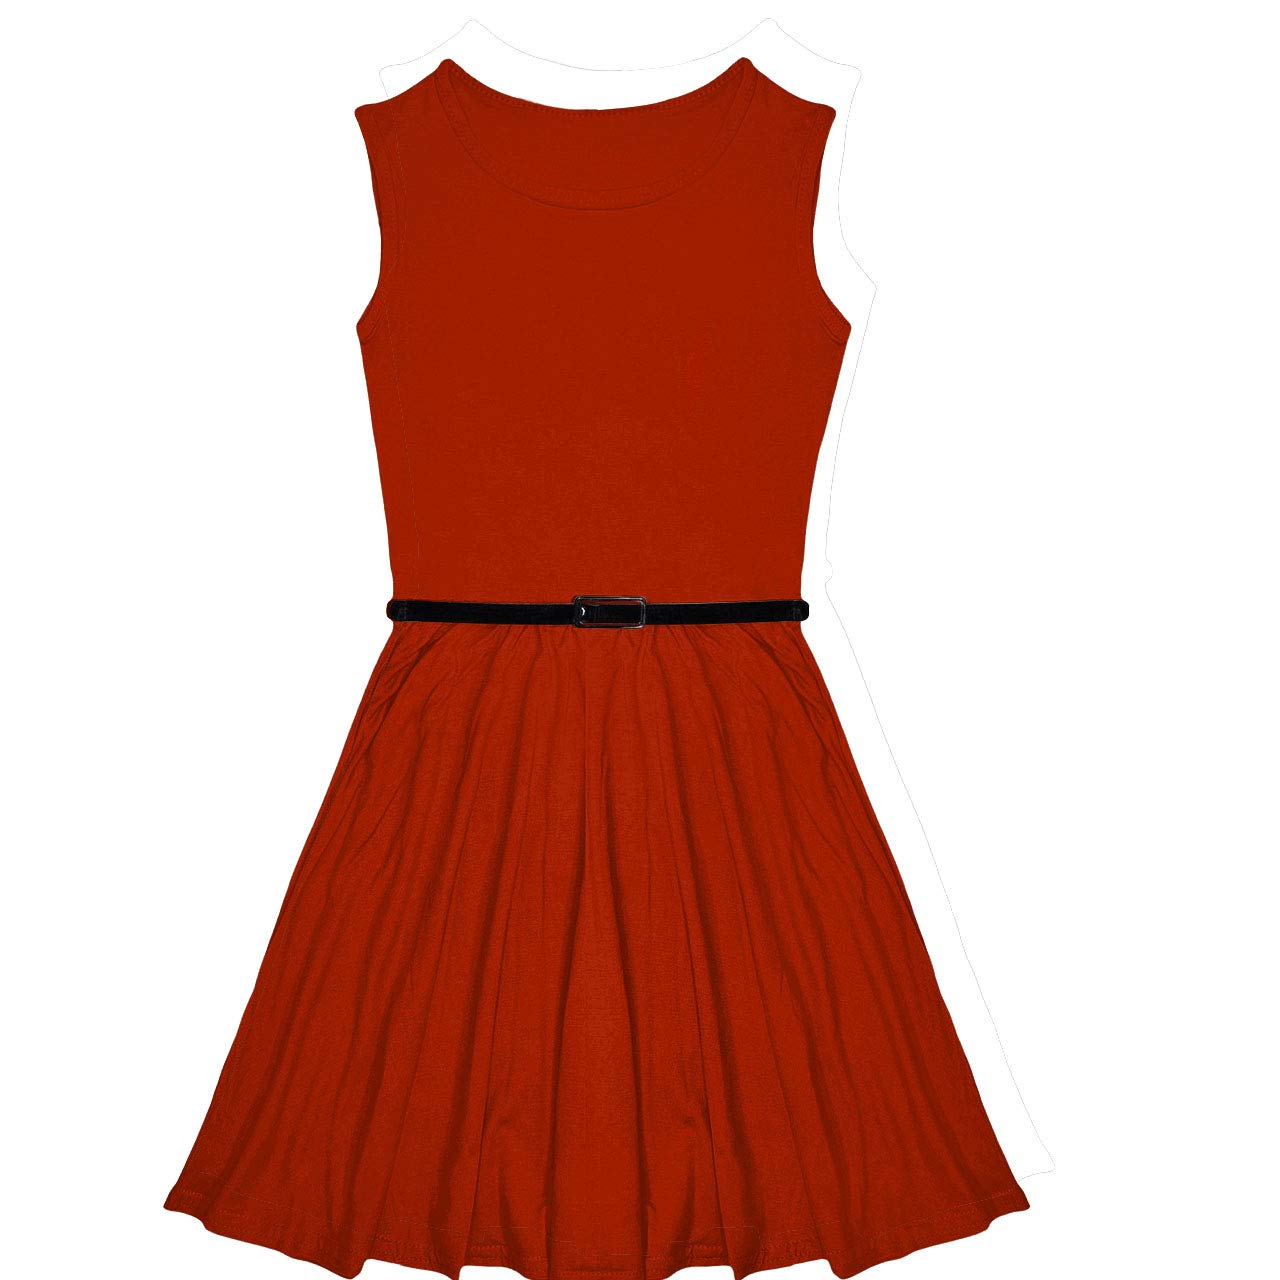 02f78acd8325 Amazon.com  Miss Vanilla New Girls Plain Skater Dress Kids Party ...